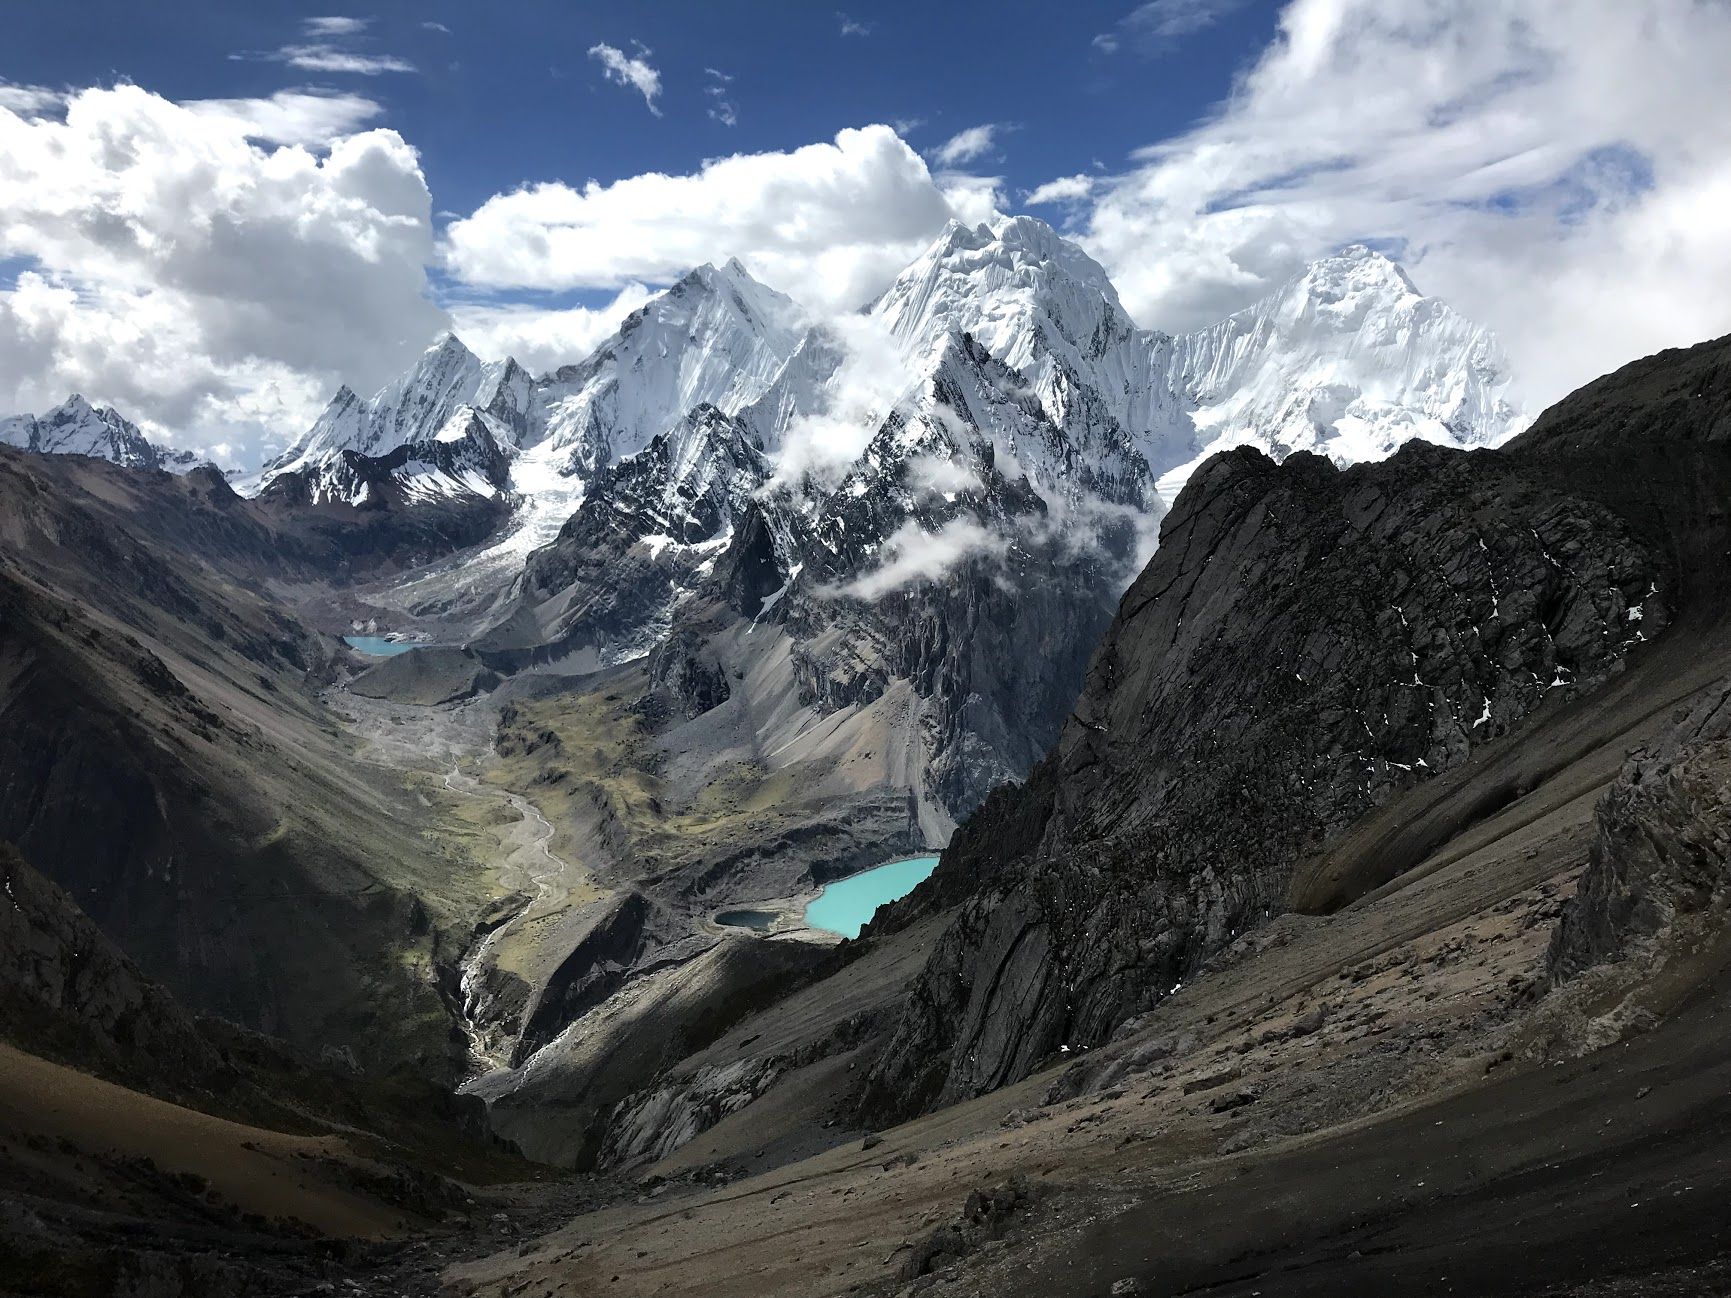 The Cordillera Huayhuash